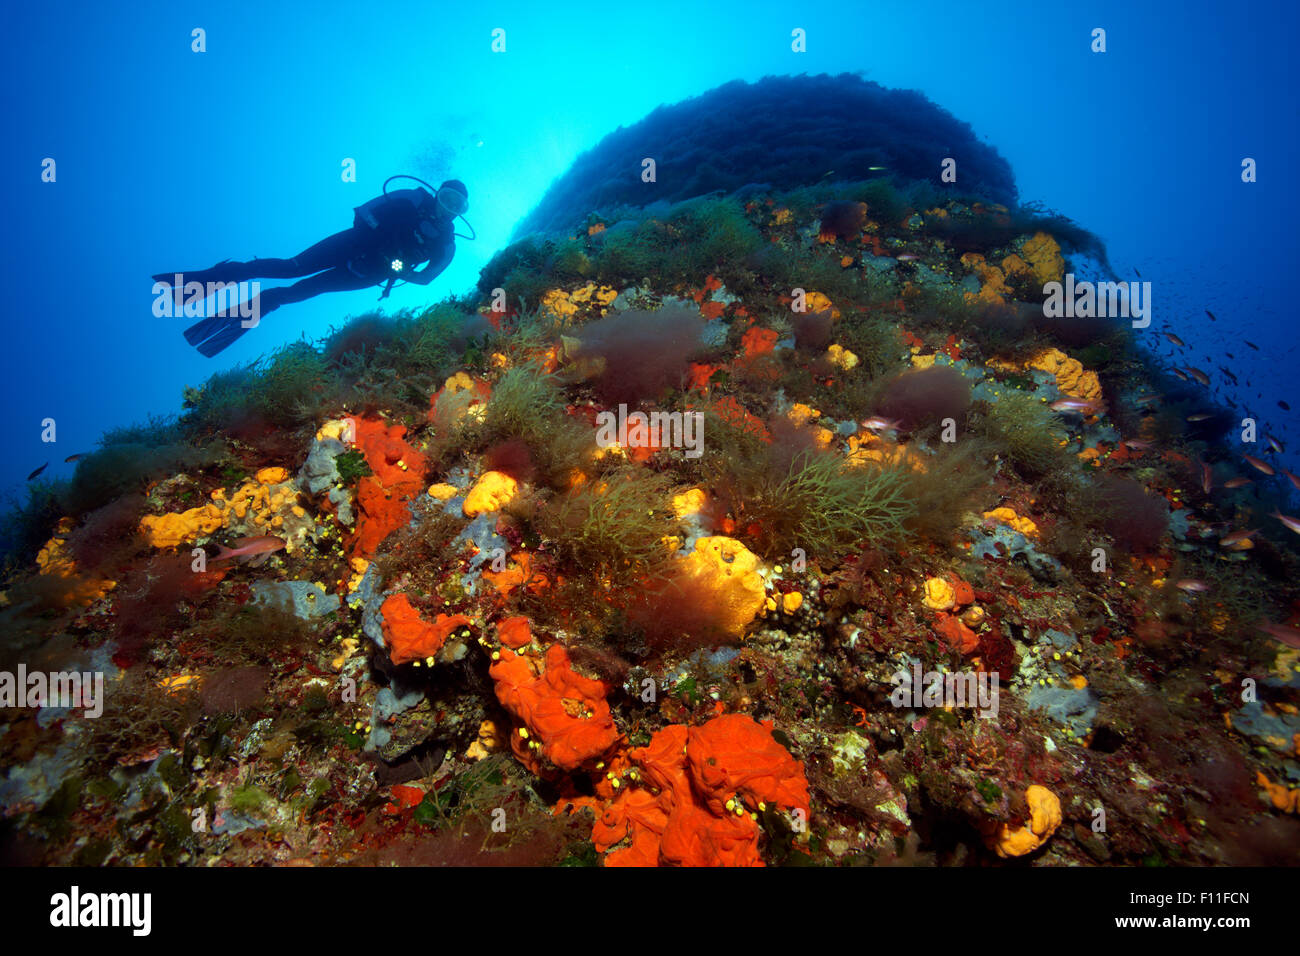 Diver by a rock face, thick growth with different sponges (Porifera), algae (Algae) and moss animals (Bryozoa), Stock Photo